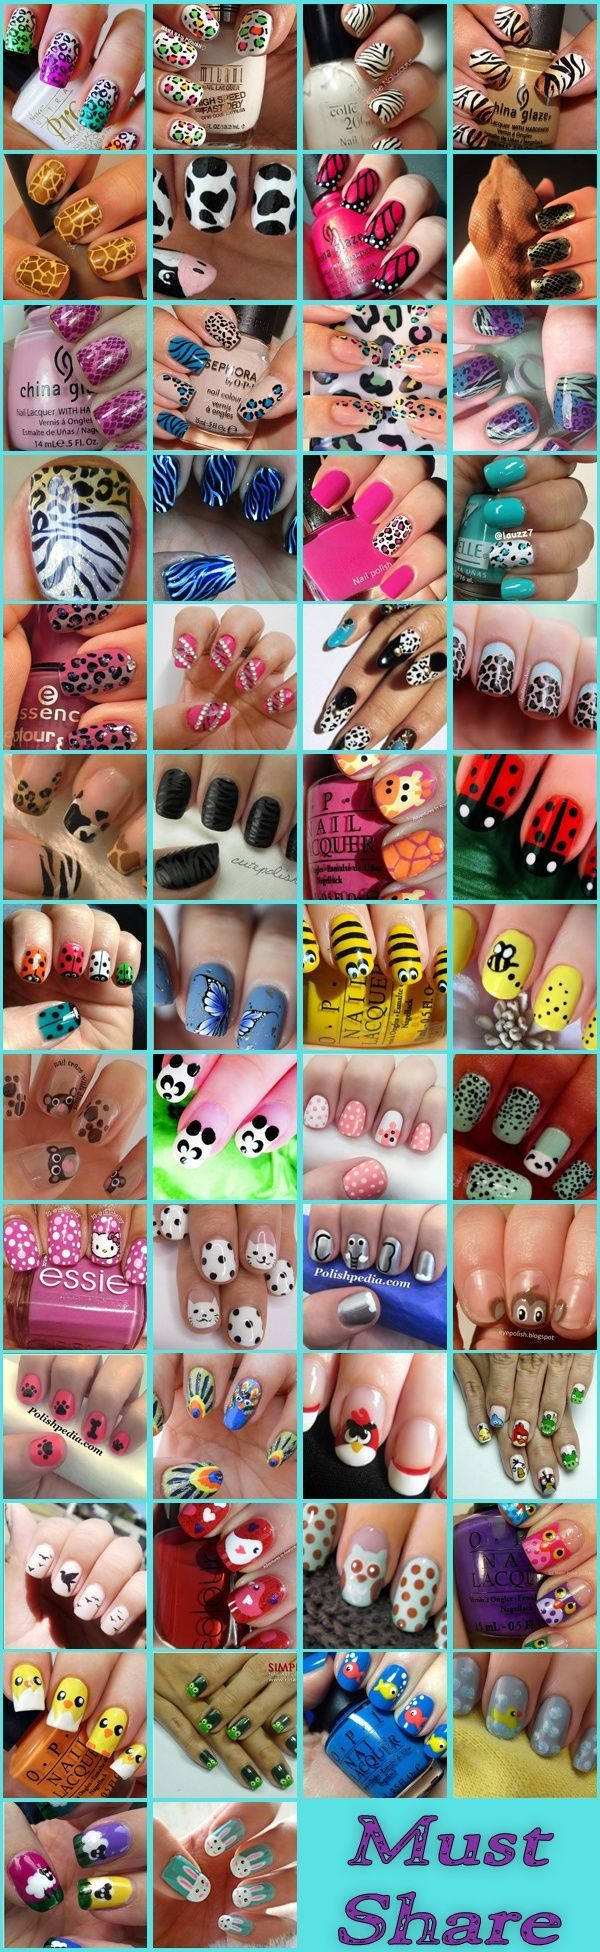 best images about nail art on pinterest